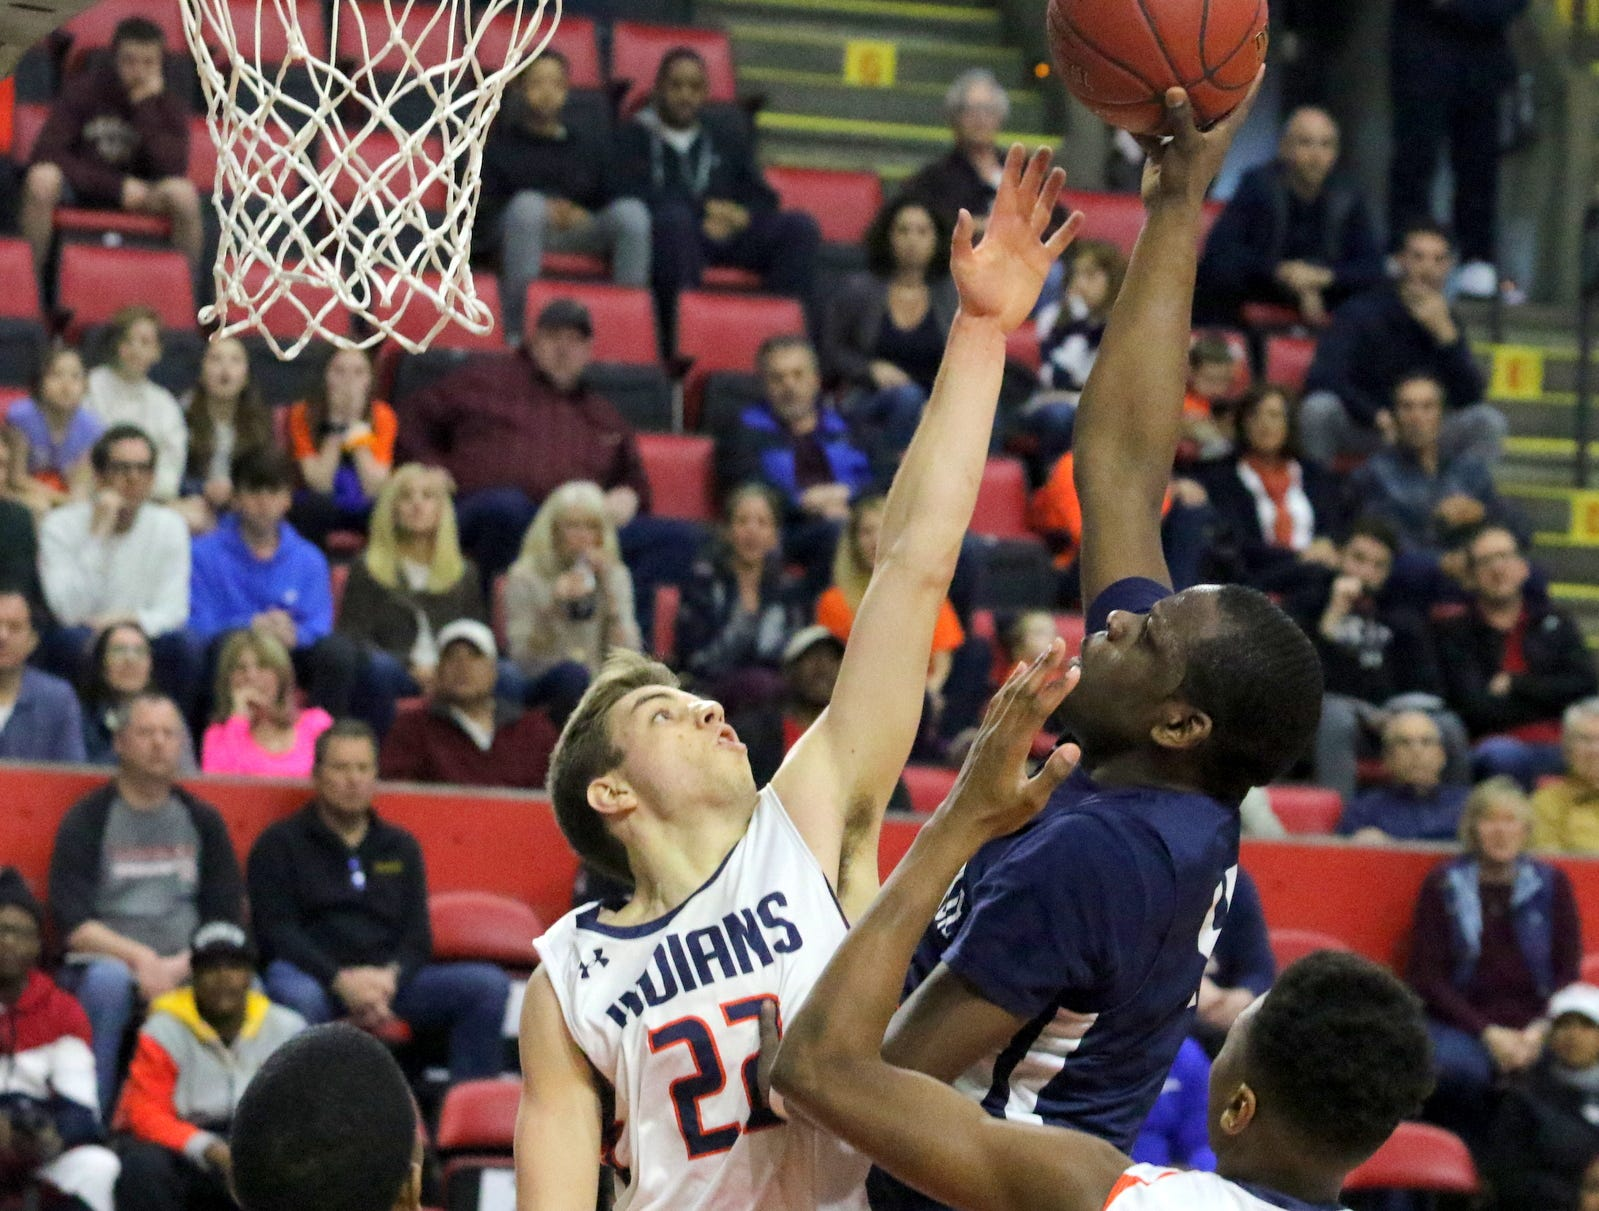 Tremell Reaves of Poughkeepsie takes a shot as Thomas Santella of Manhasset defends during a Class A boys basketball state semifinal March 15, 2019 at Floyd L. Maines Veterans Memorial Arena in Binghamton.